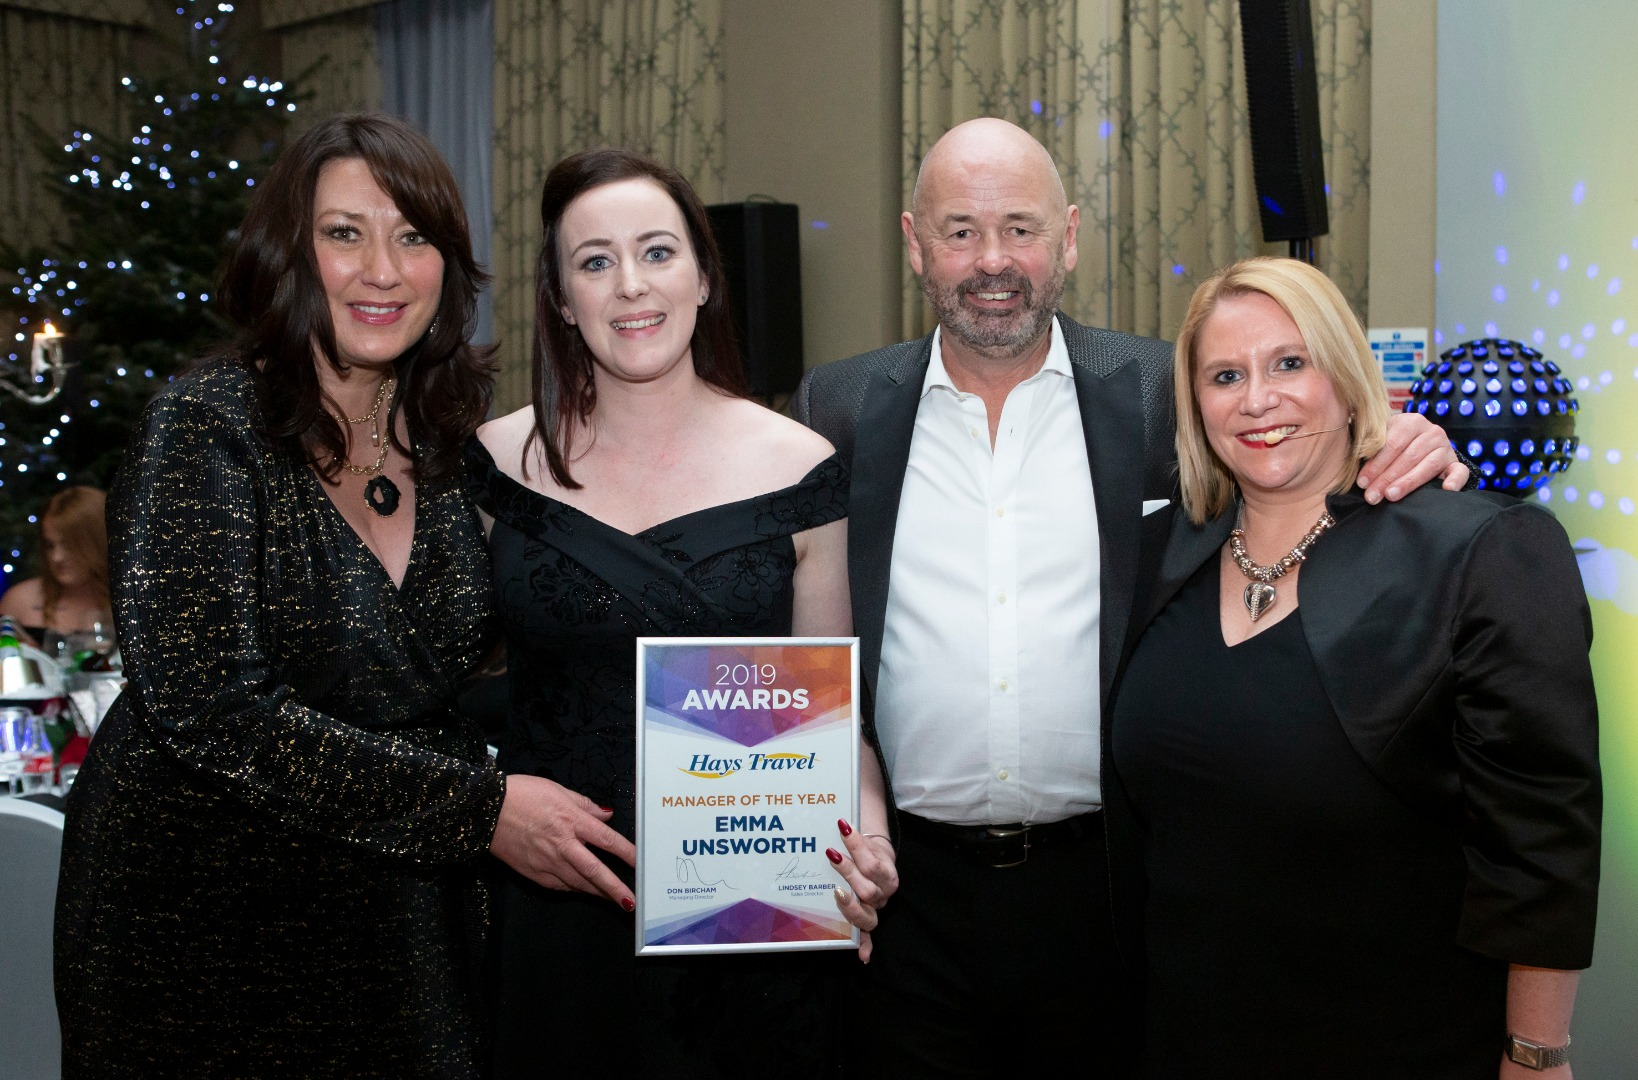 HIGH-FLYING EMMA LANDS TOP AWARD AND IS NAMED MANAGER OF THE YEAR